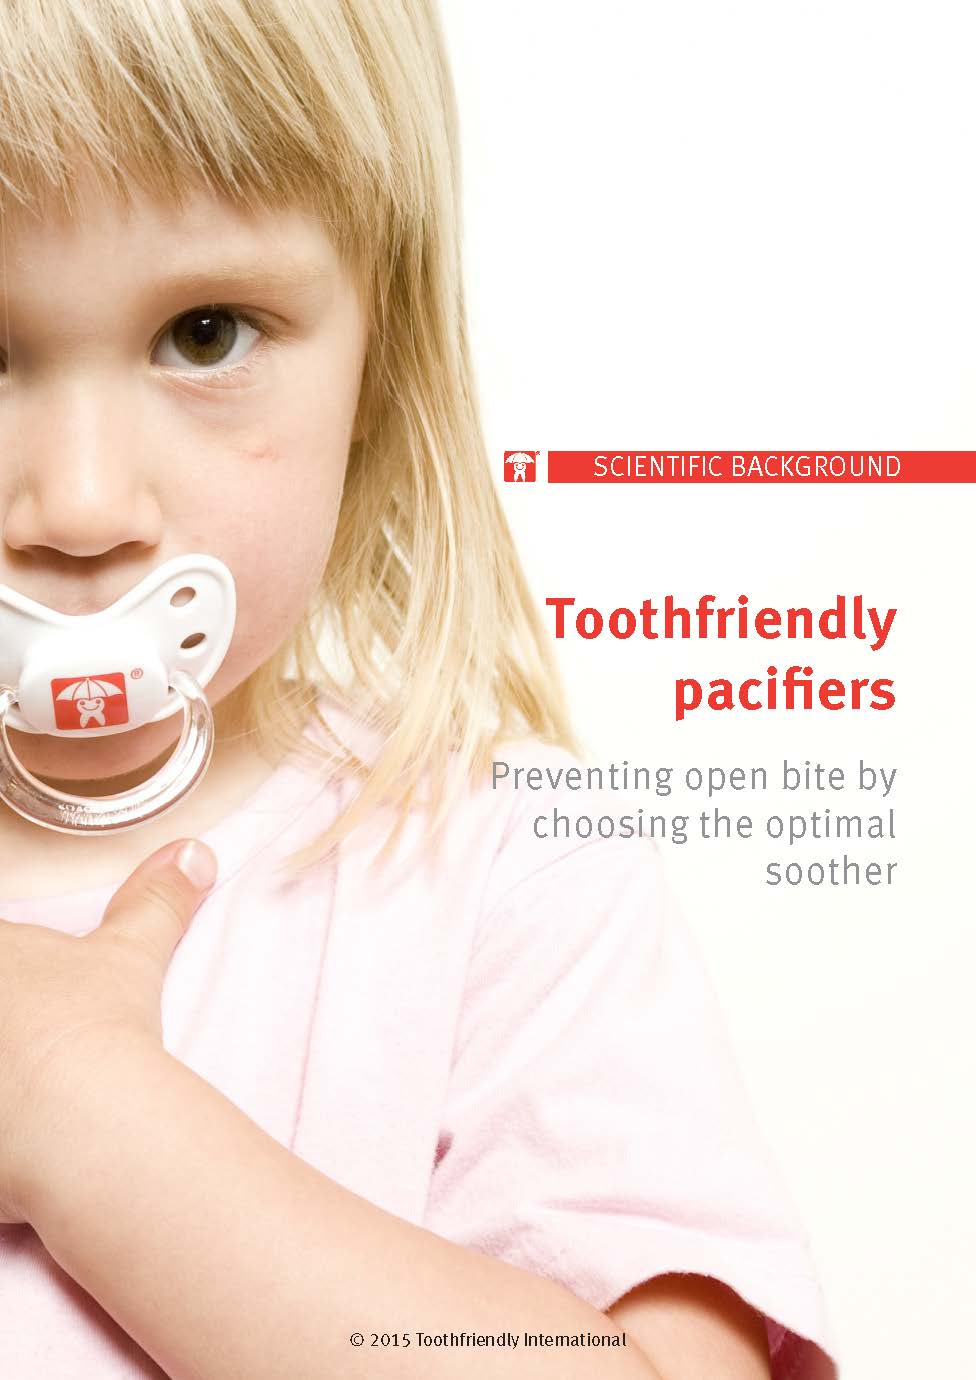 Toothfriendlypacifiers